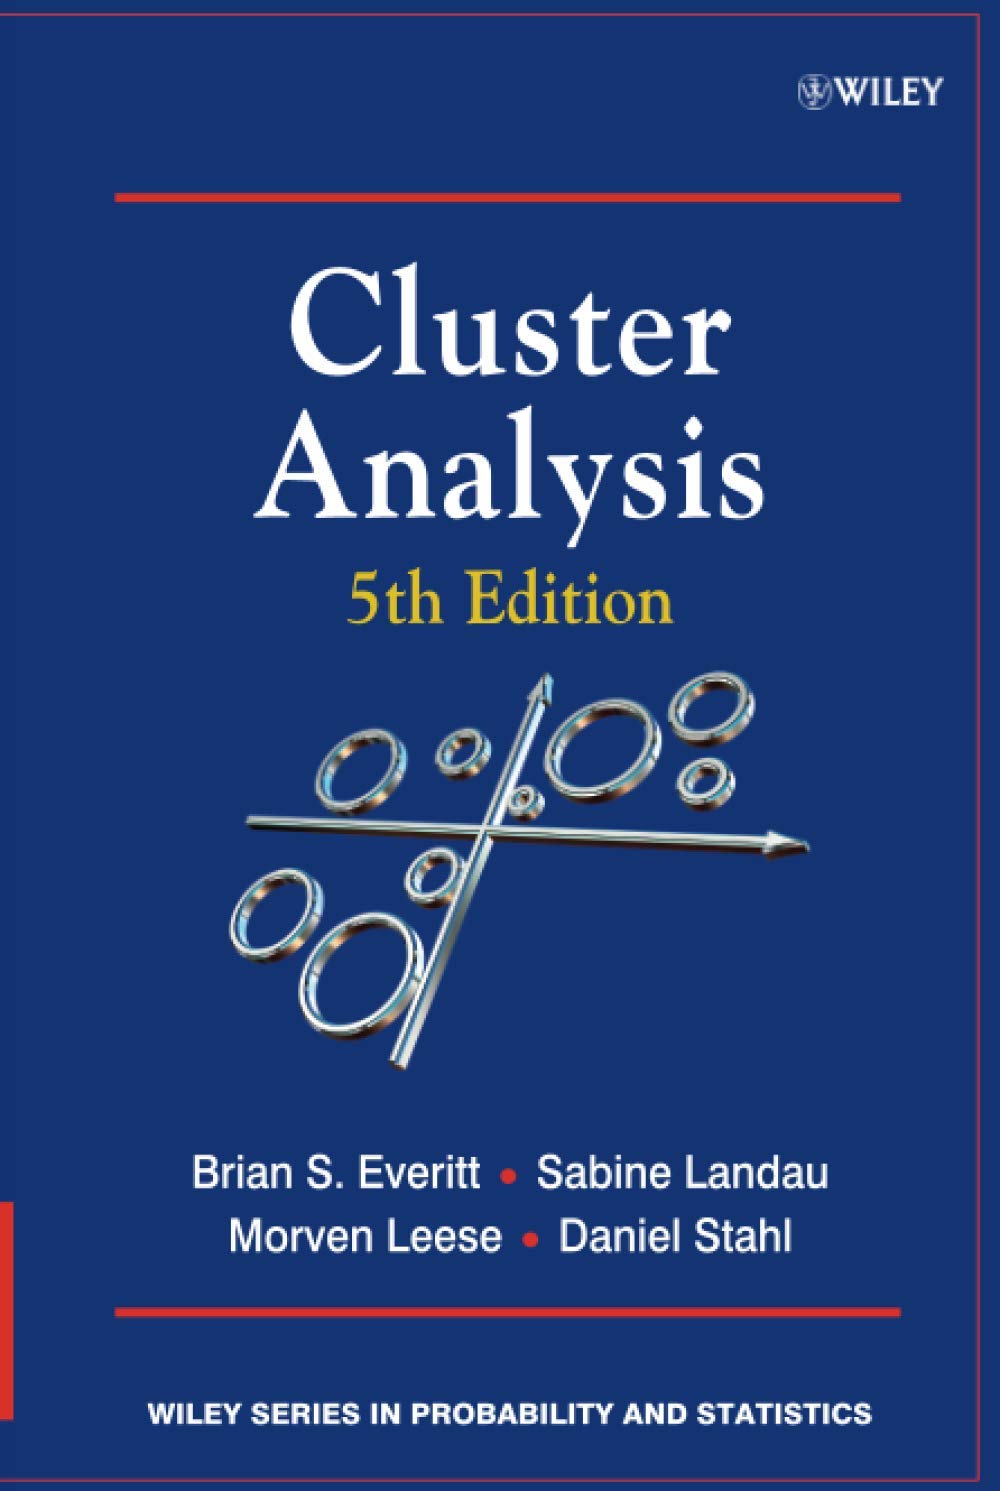 Cluster Analysis, 5th Edition